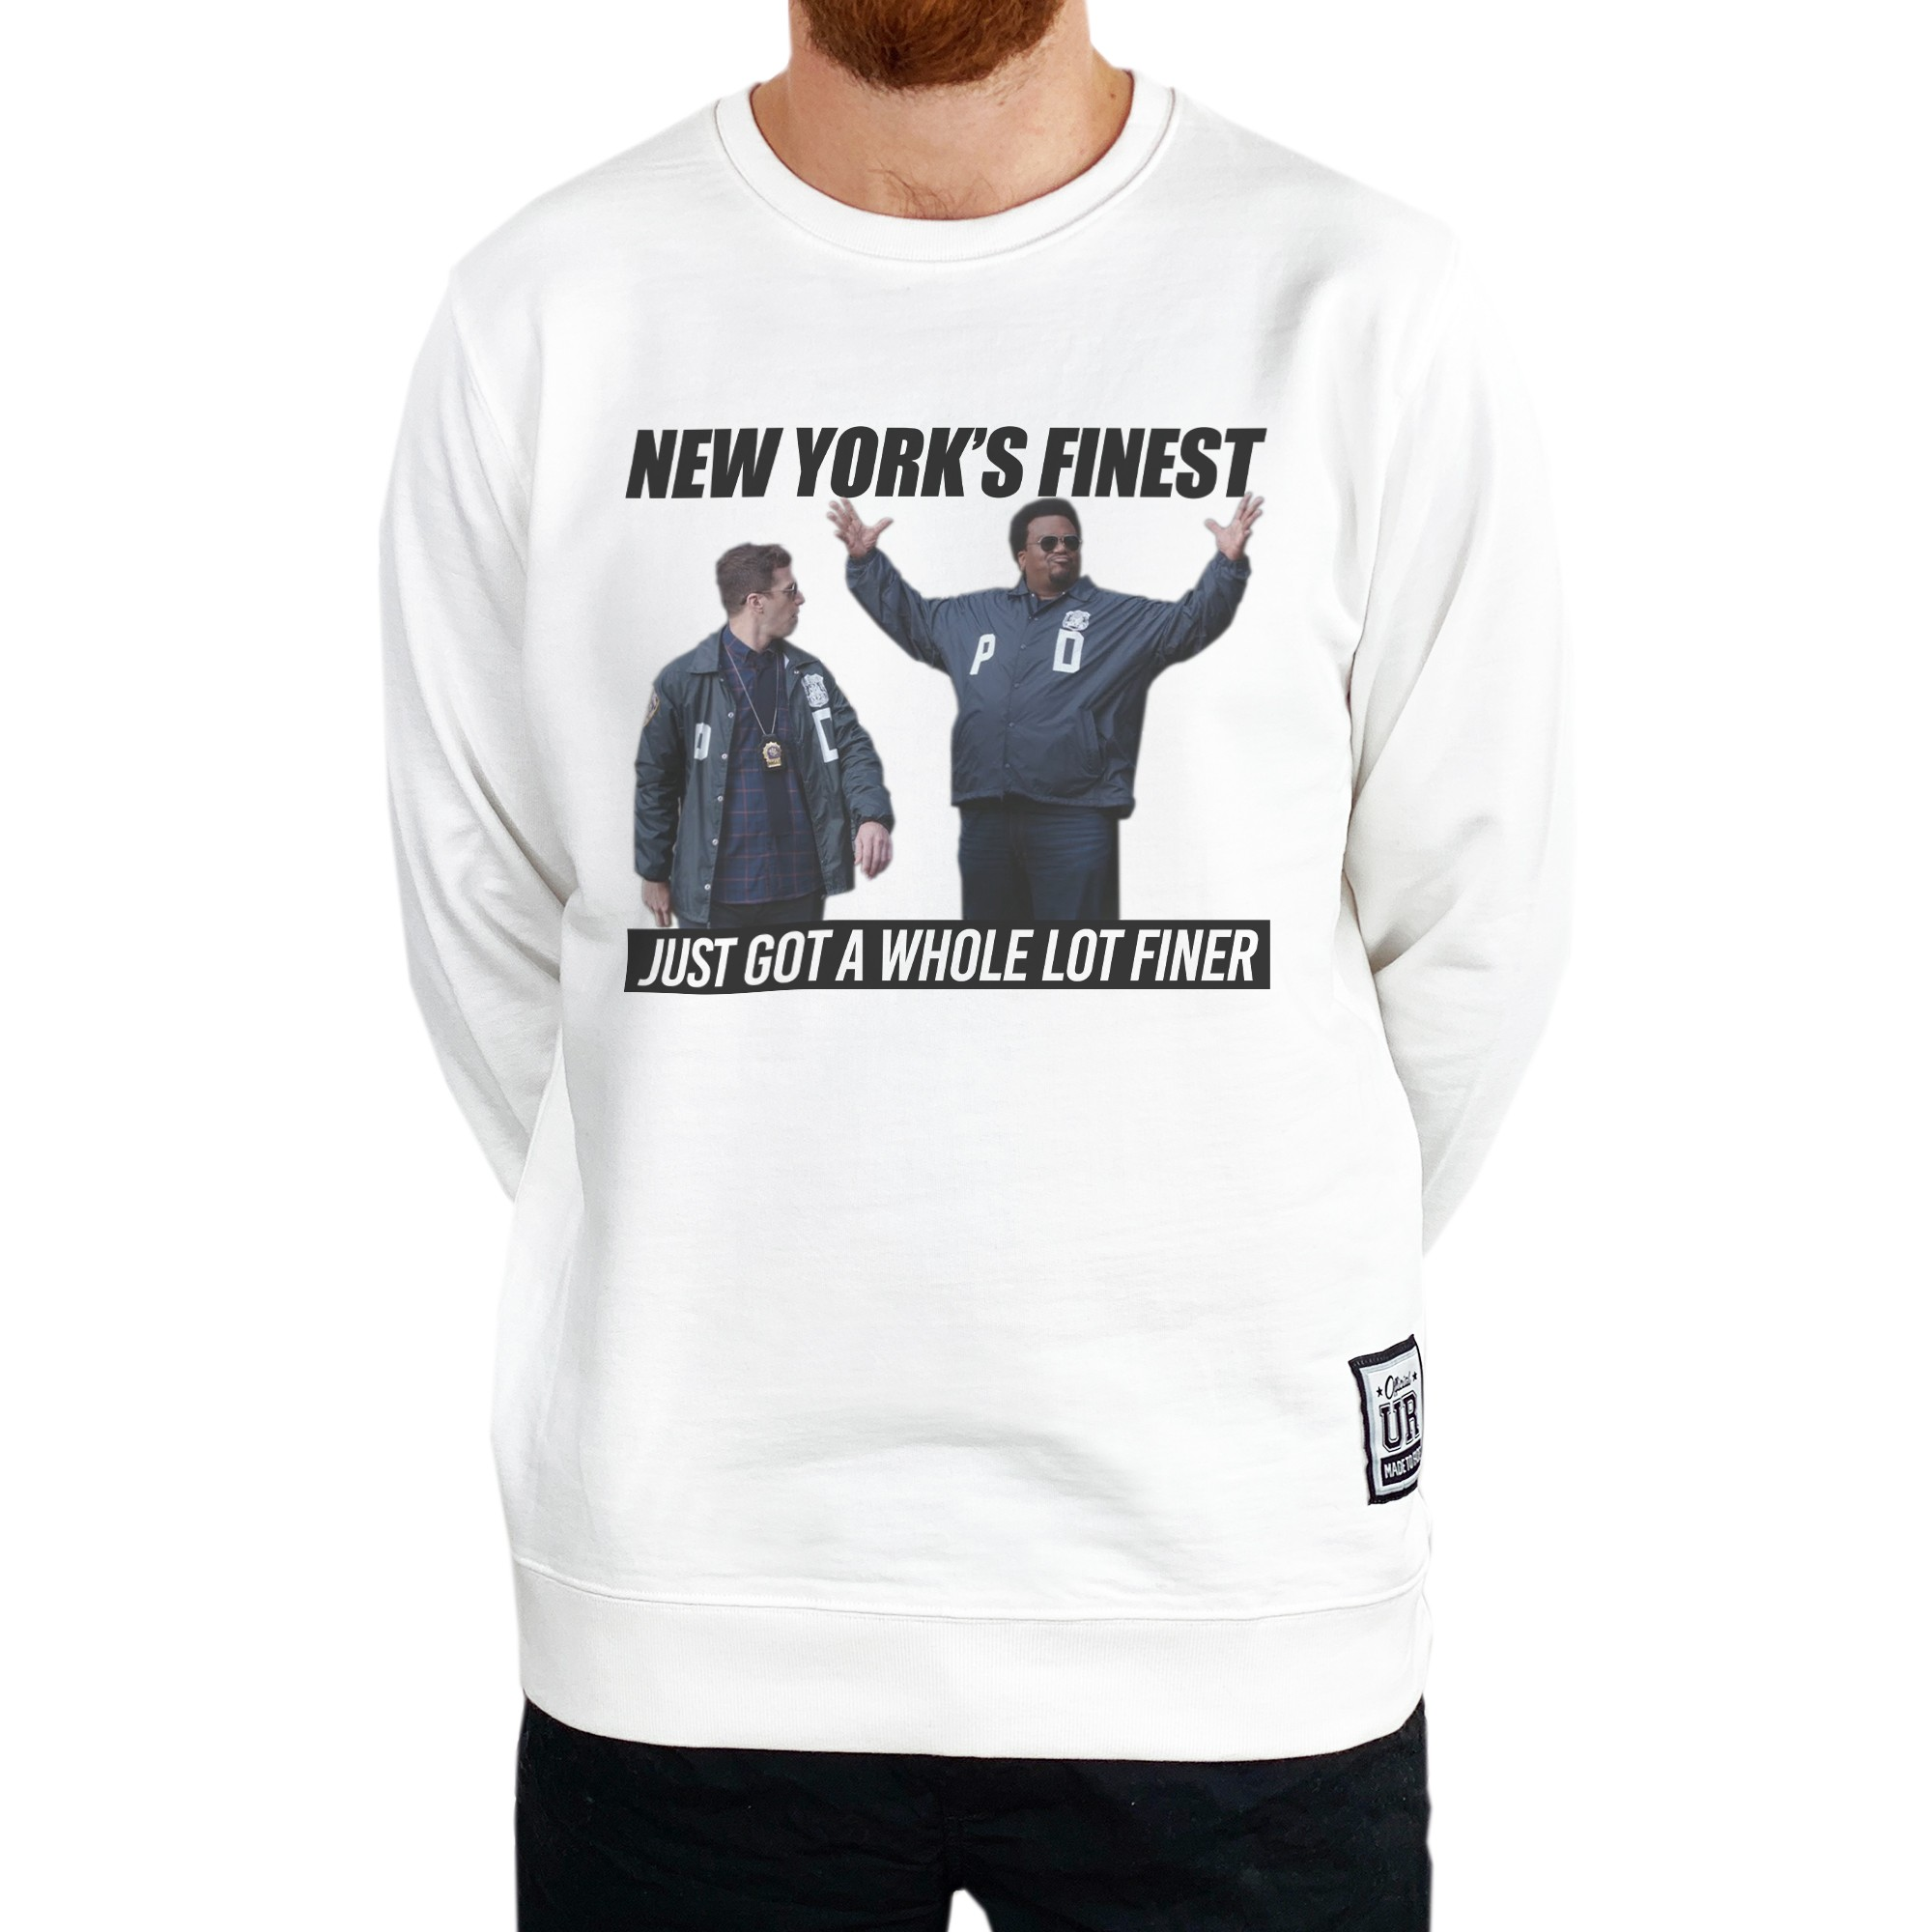 NEW YORKS FINEST WHITE CREW